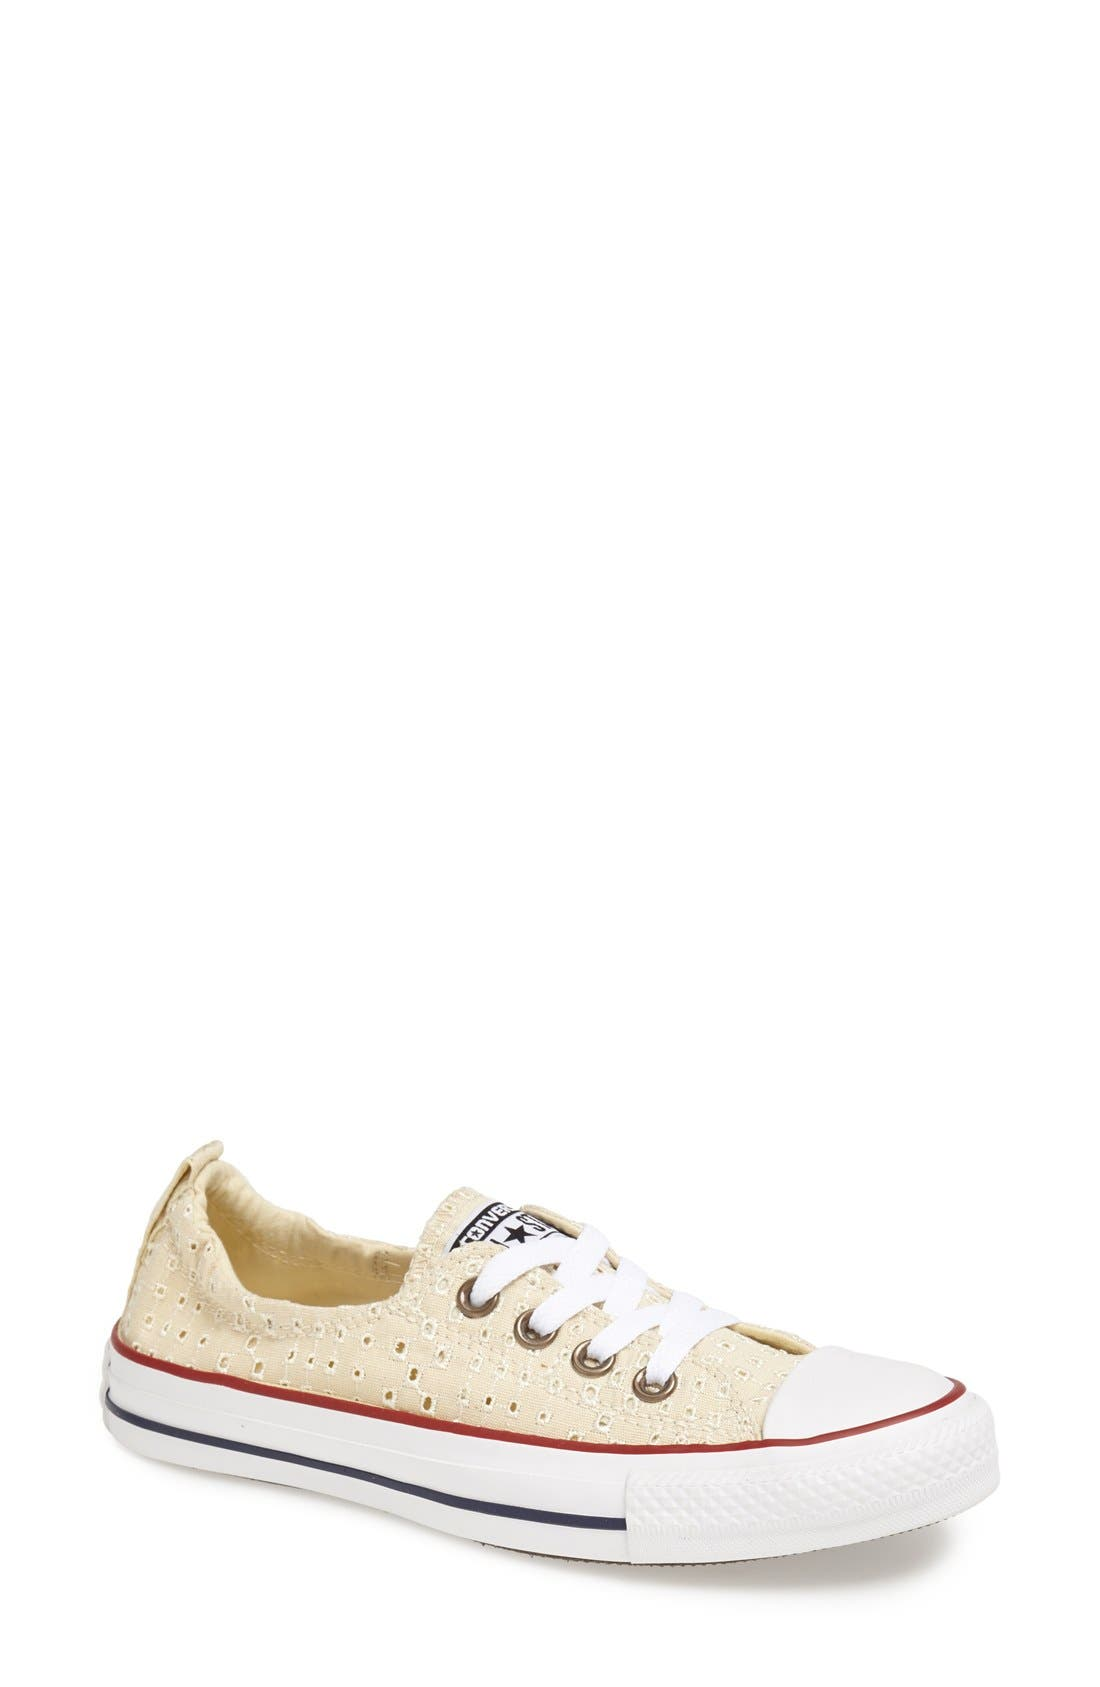 Alternate Image 1 Selected - Converse Chuck Taylor® 'Shoreline' Eyelet Sneaker (Women)